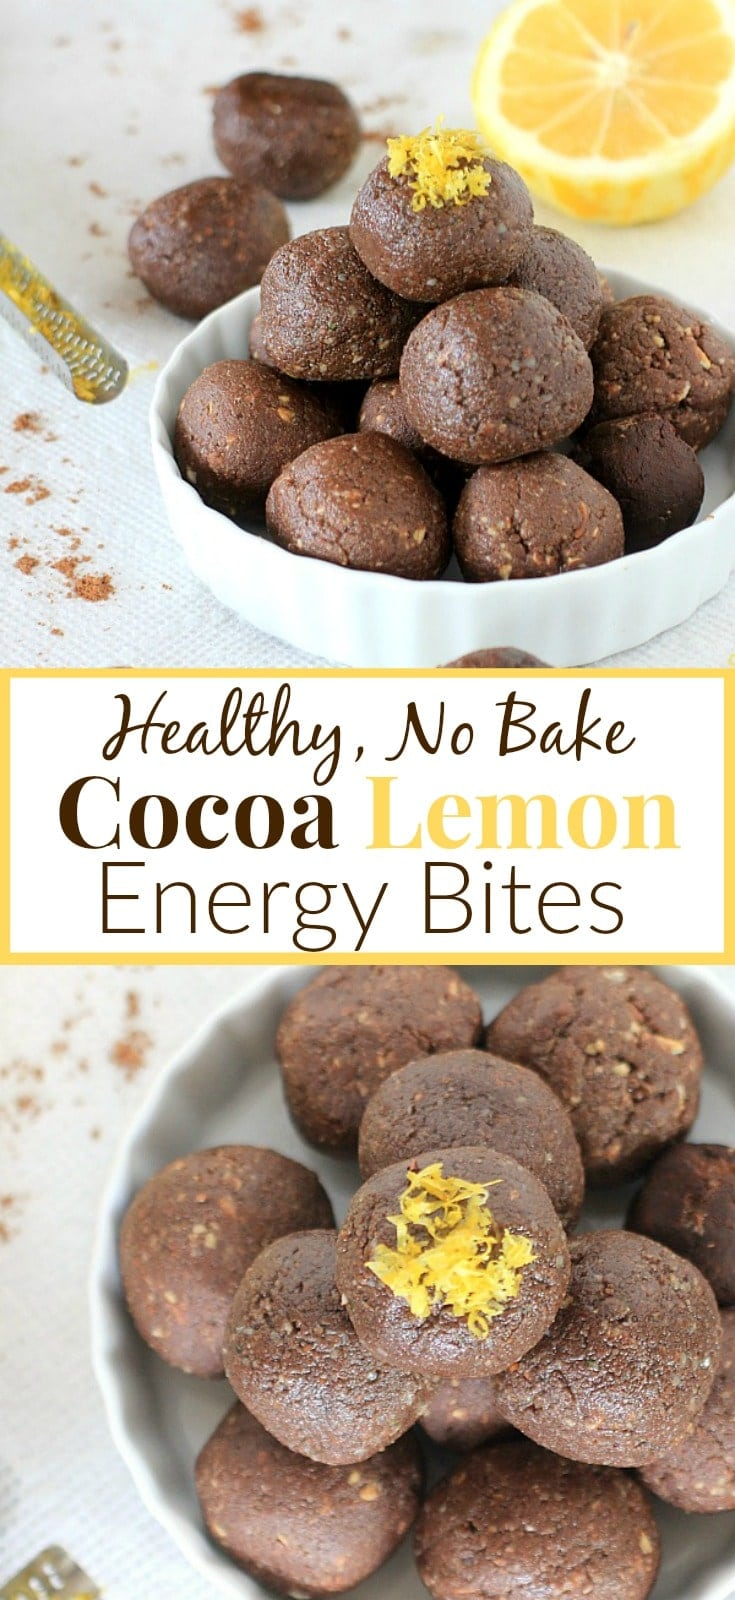 These cocoa lemon energy bites pair pure cocoa powder with fresh lemon zest and a handful of other